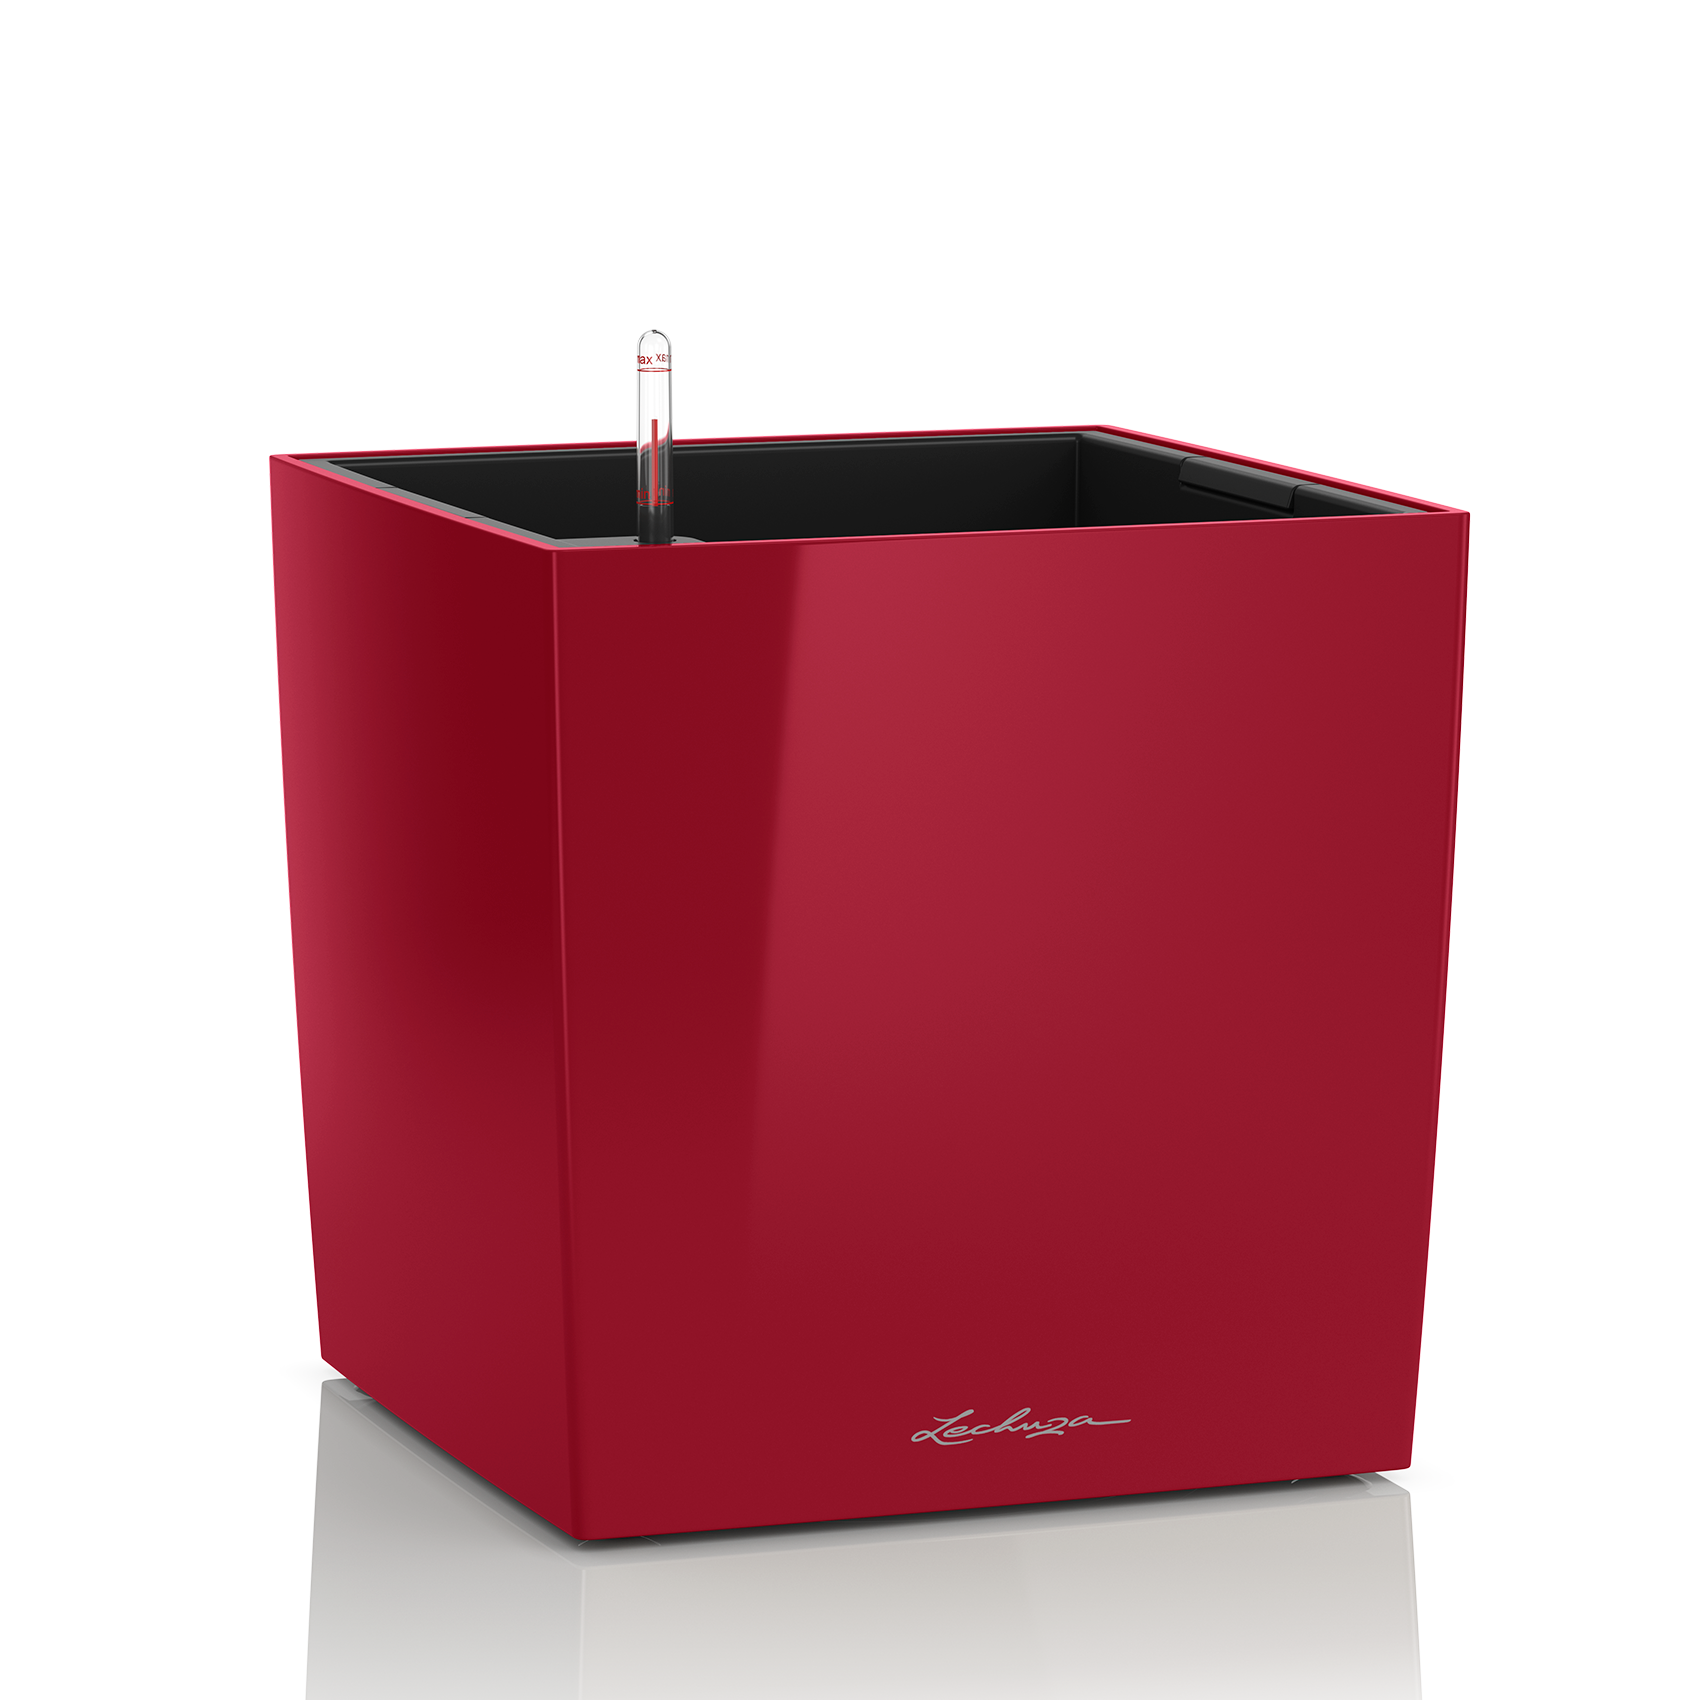 CUBE 50 scarlet red high-gloss